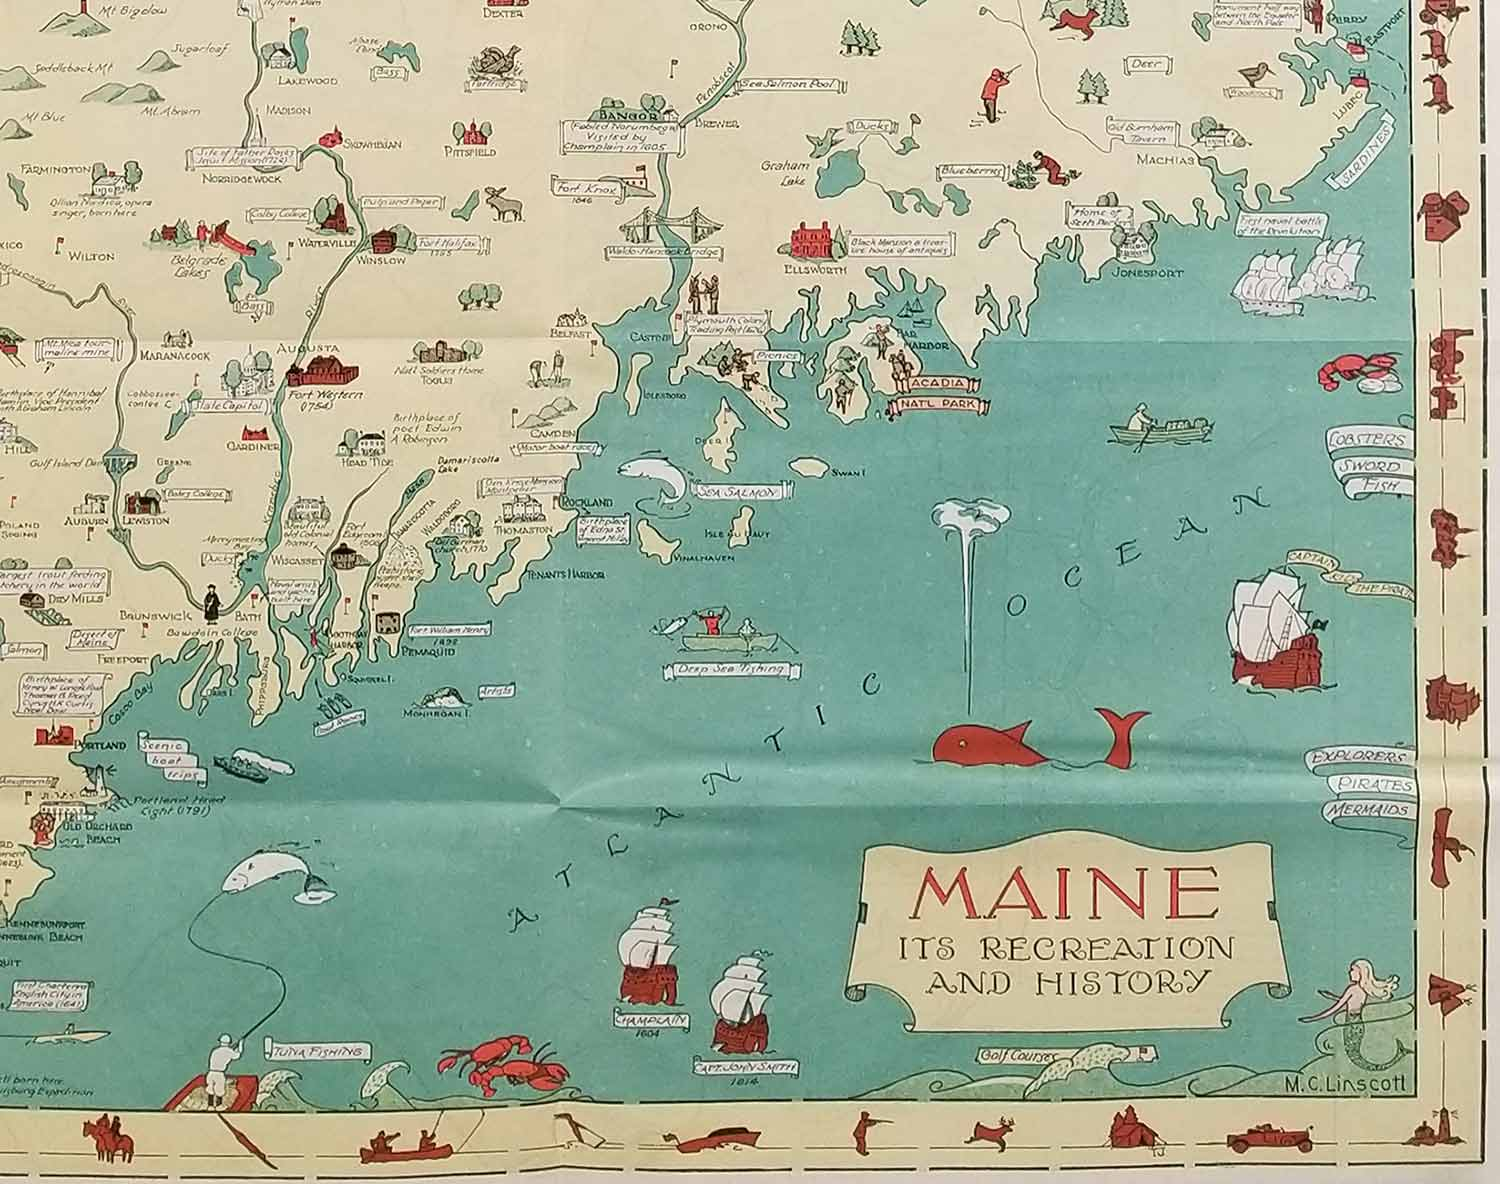 Old Maine Map.Route And Pictorial Map Of Maine Map Title Maine Its Recreation